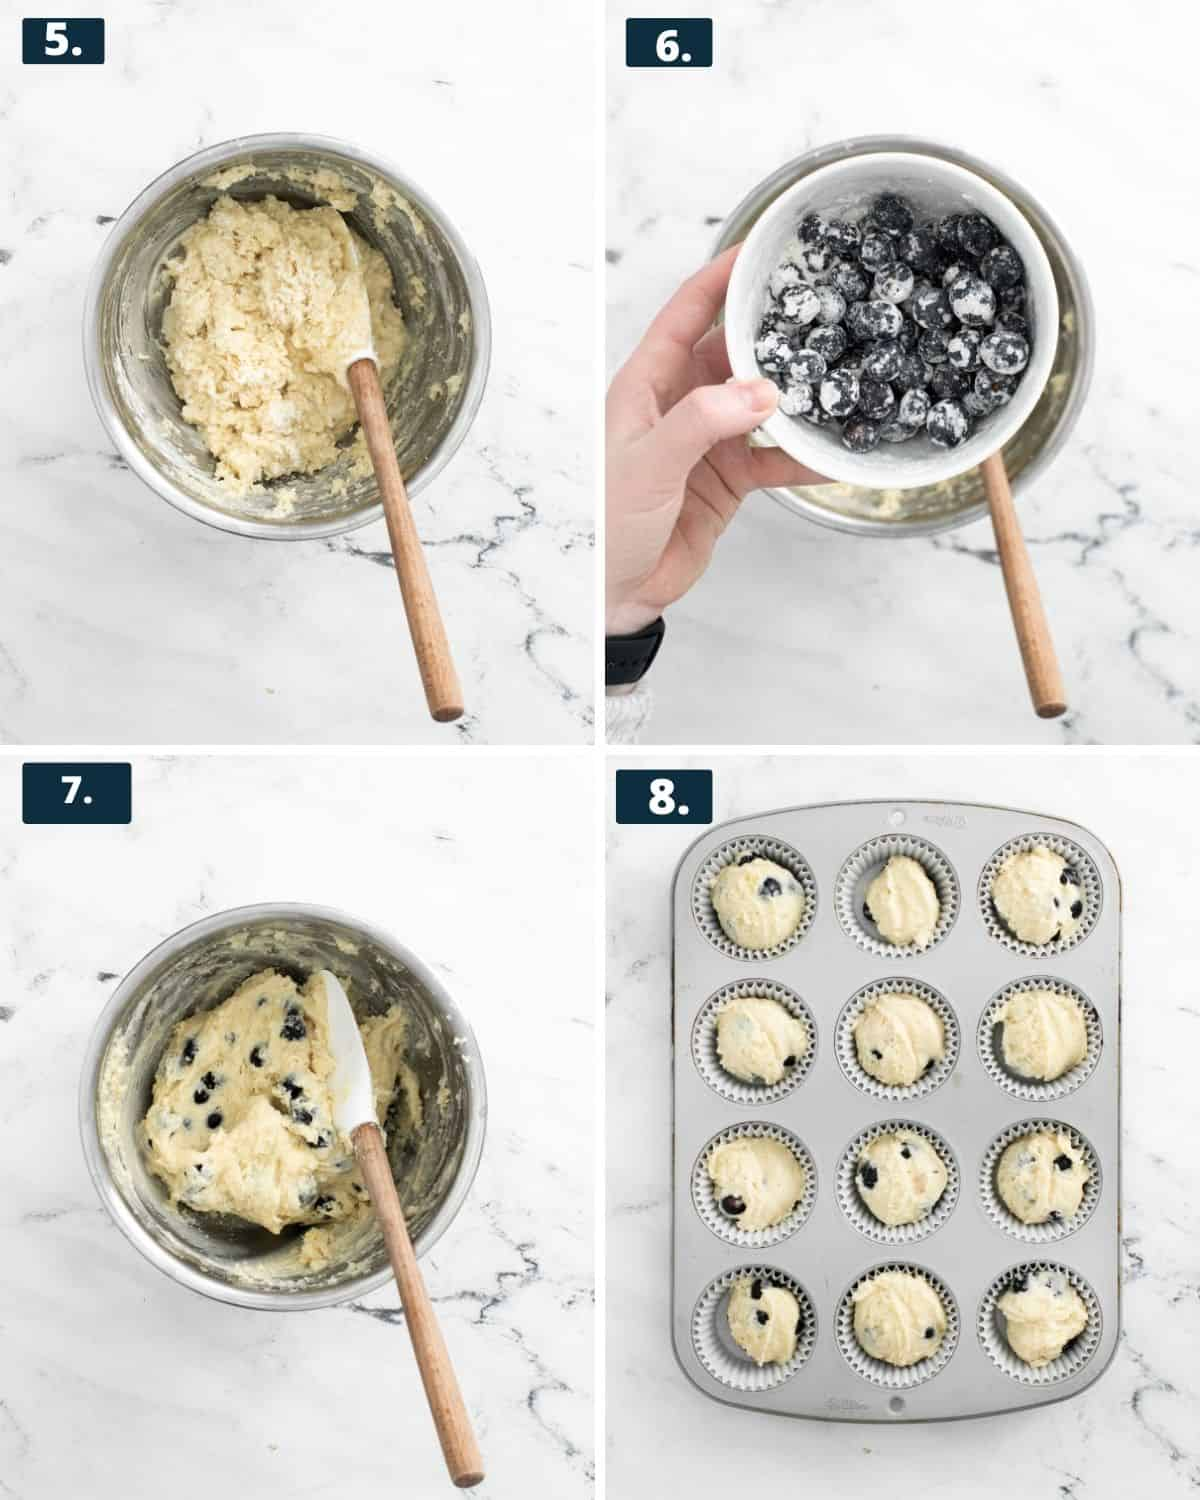 step 5-8 of making muffins. Photo 1, mix wet and dry ingredients together. Photo2. mi blueberries with flour. Photo 3, mix blueberries into wet mix. Photo 4, the muffin mix in a 12 count muffin tin.